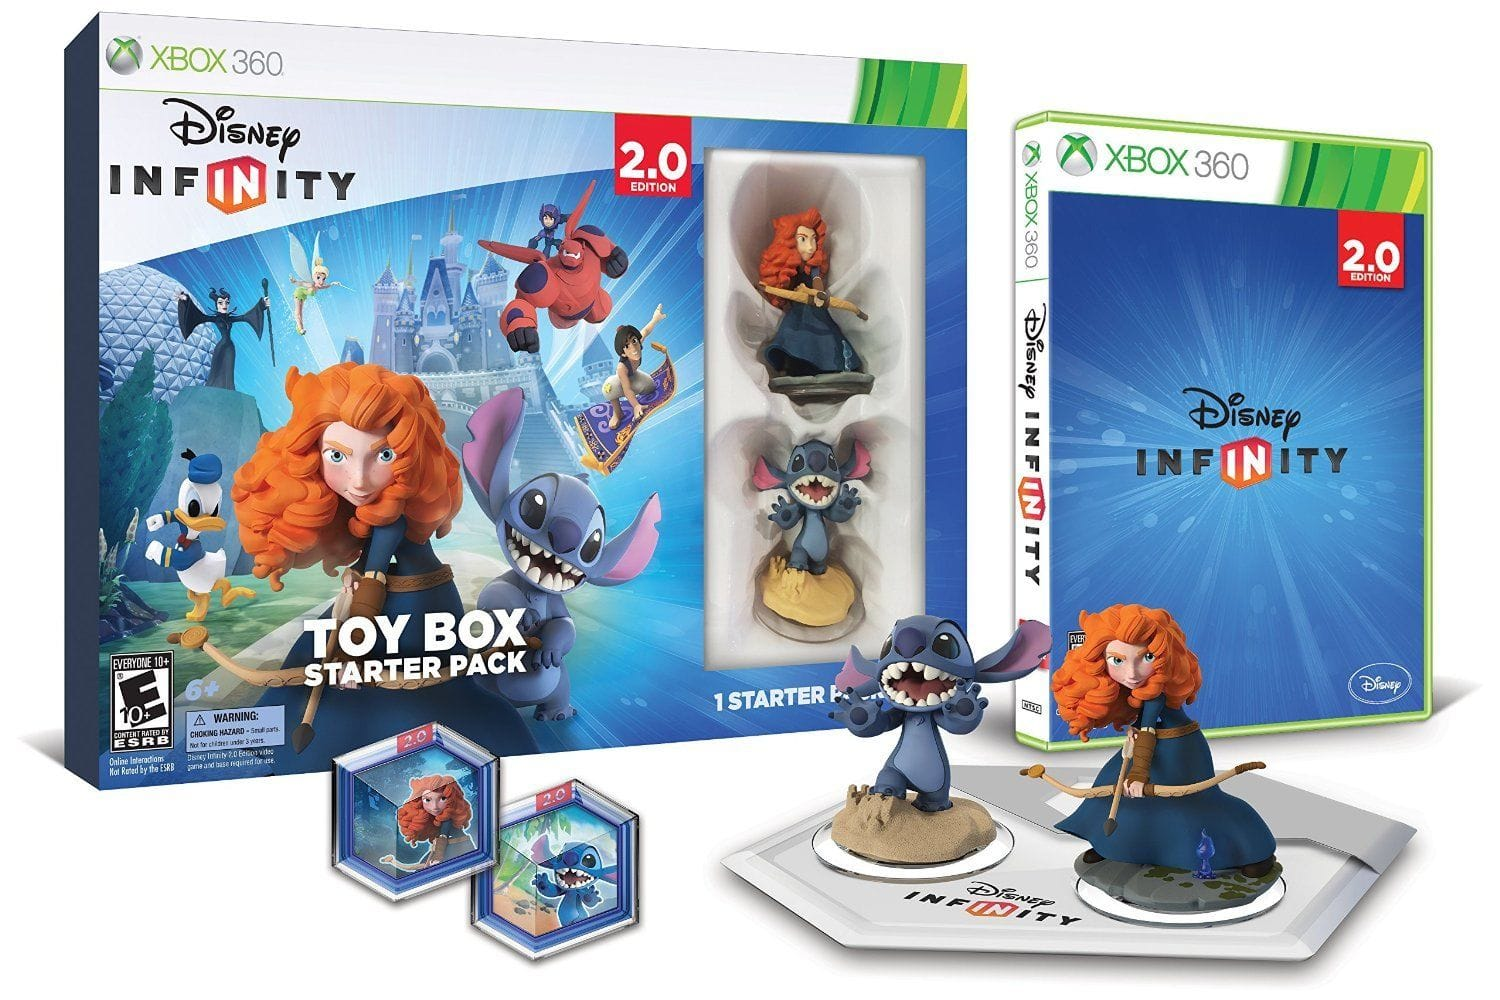 Disney Infinity 2.0 Toy Box Starter Pack for Xbox 360 - $8 w/free shipping Microsoft Store